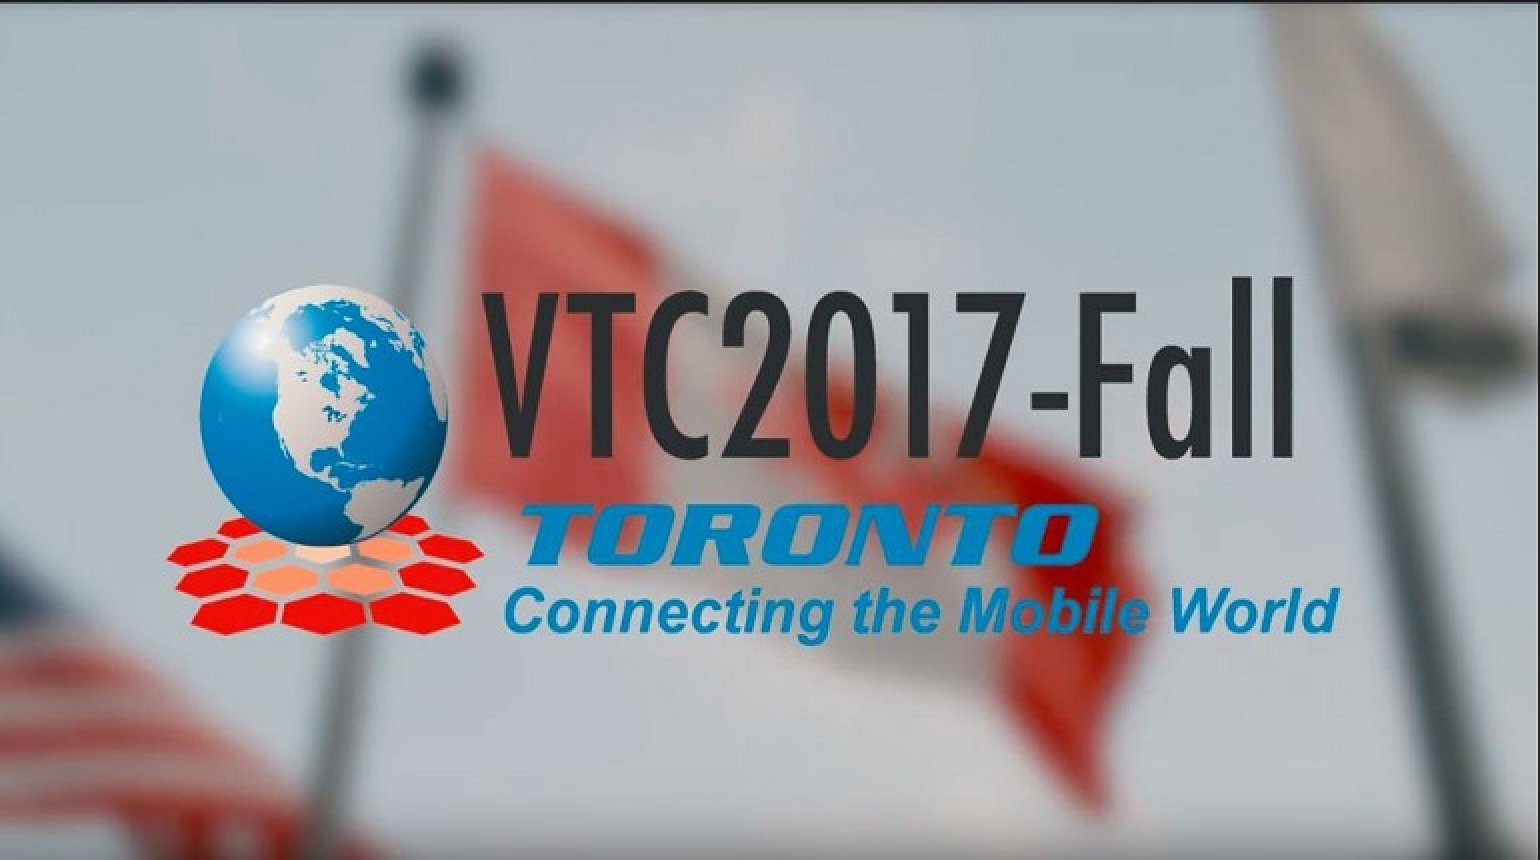 Video - VTC2017-Fall in Toronto